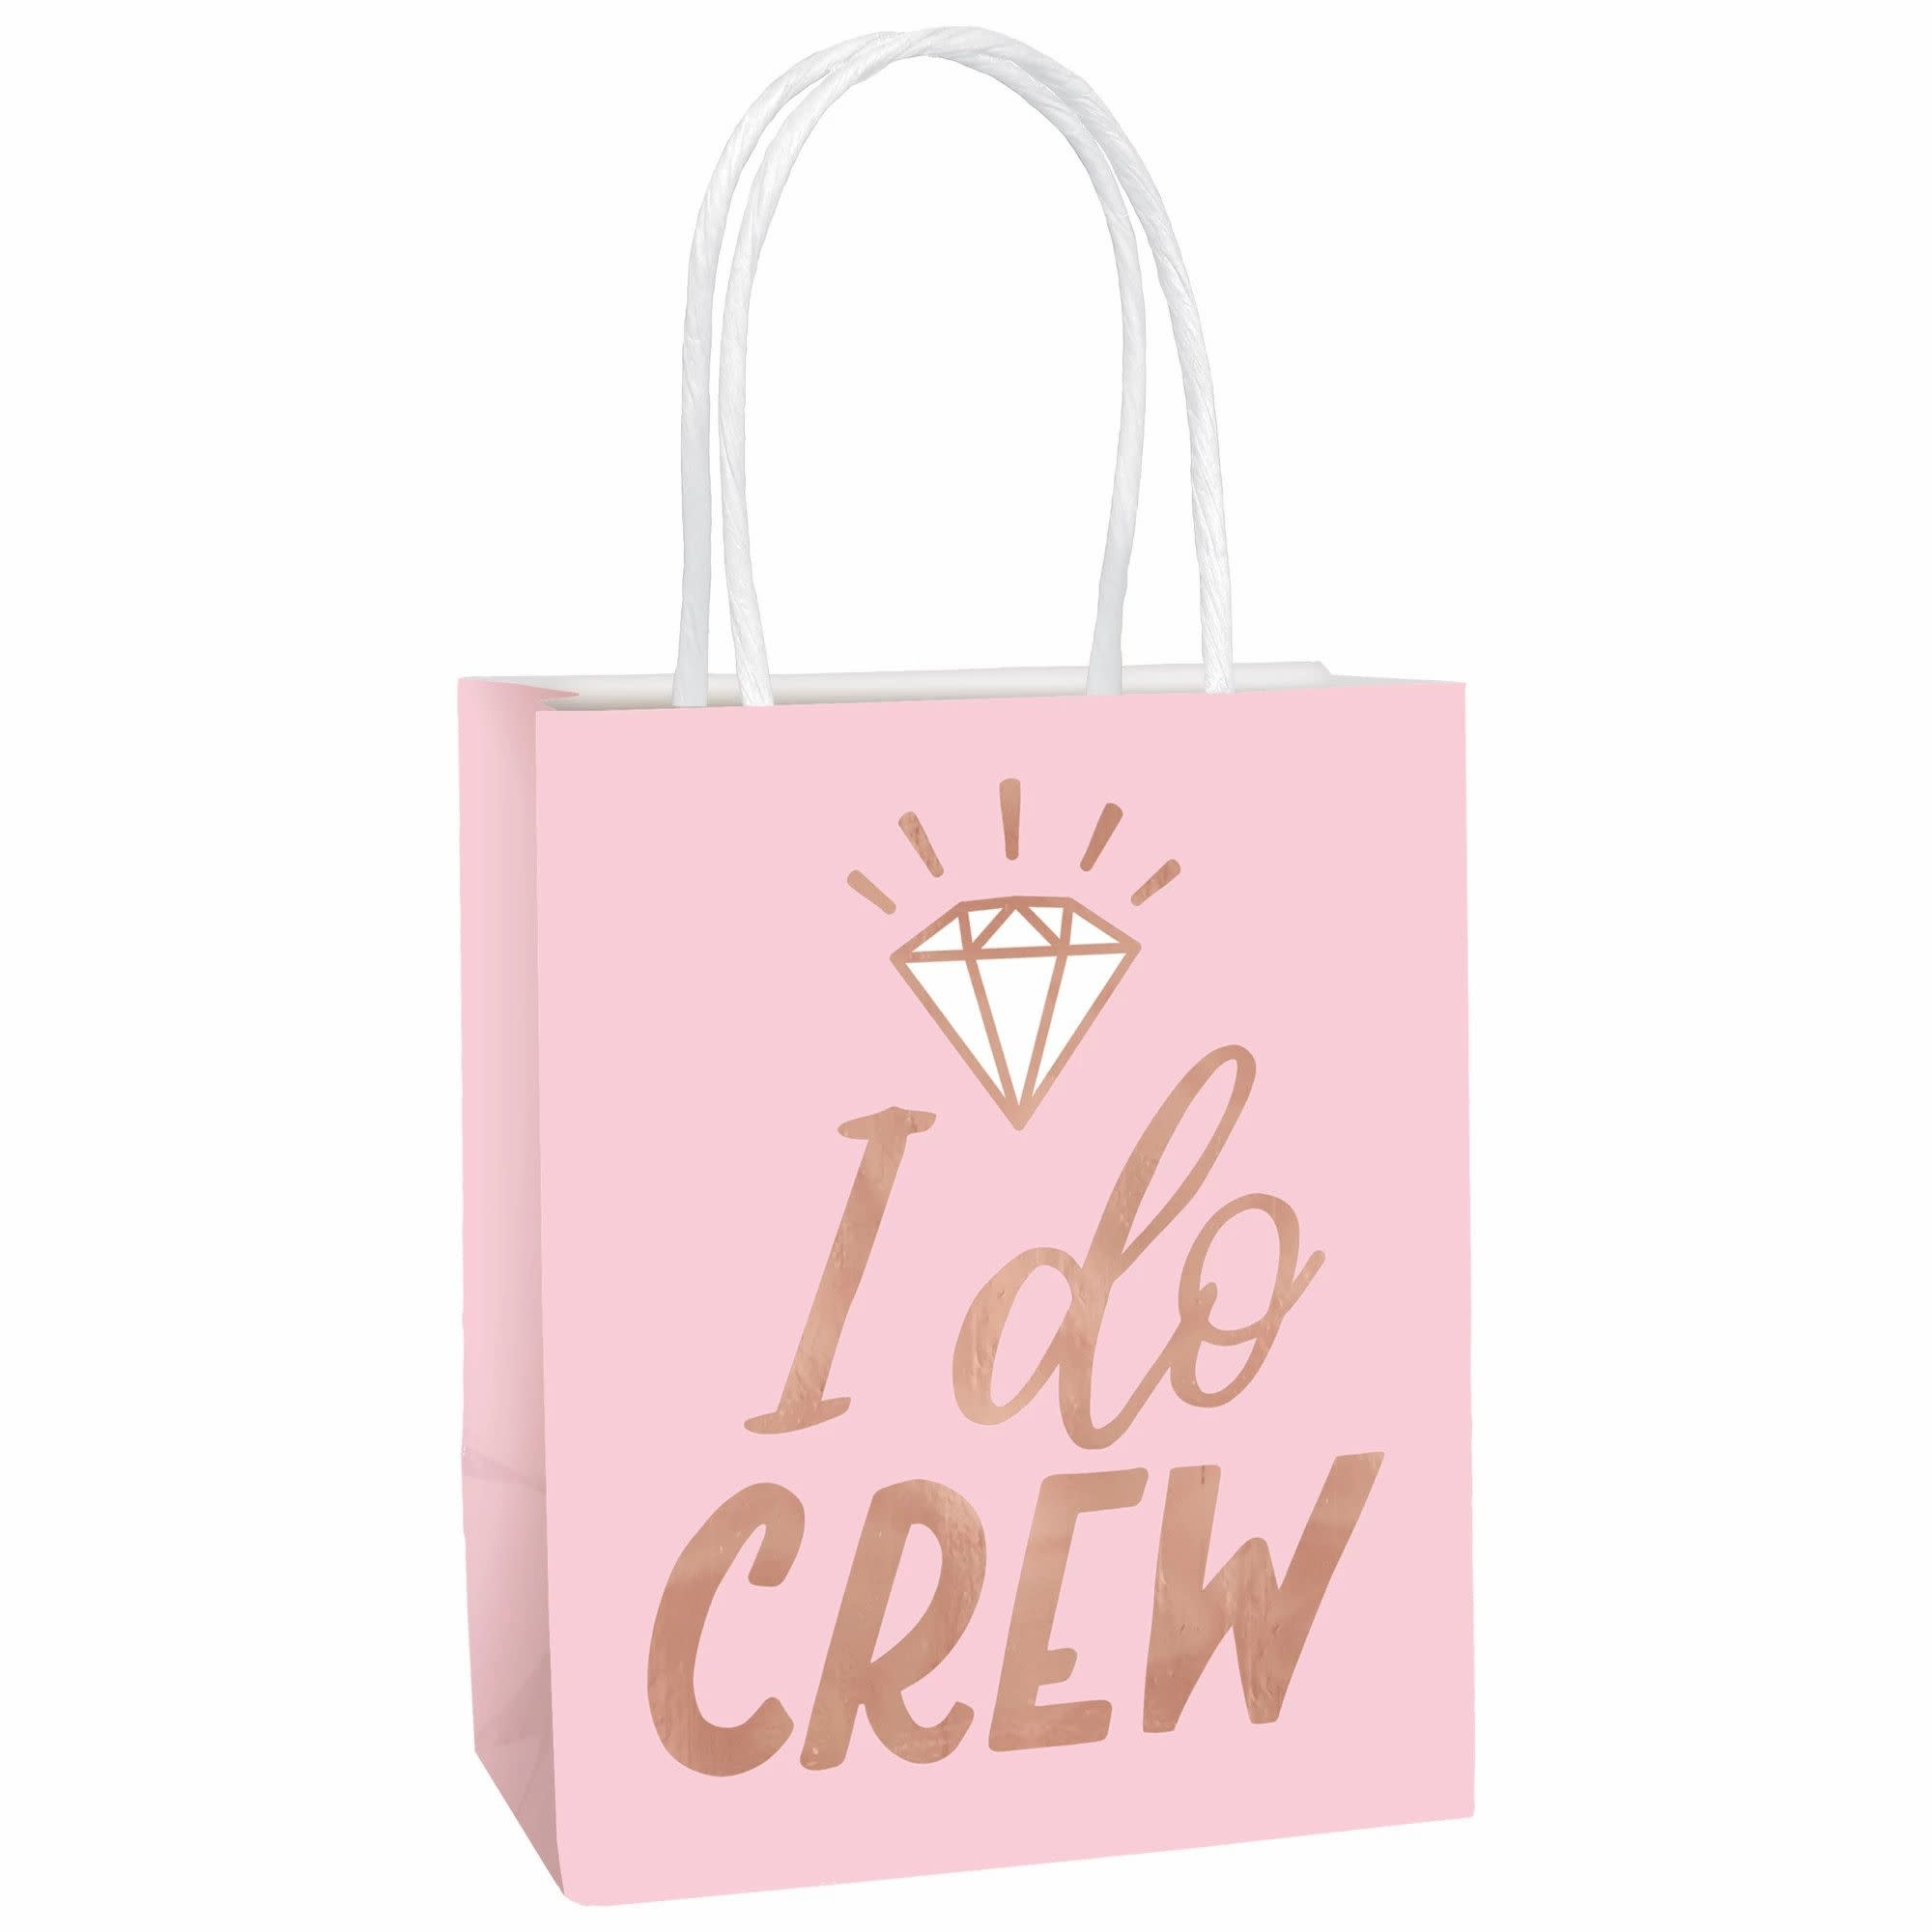 Blush Wedding Small Gift Bags- 6 Count